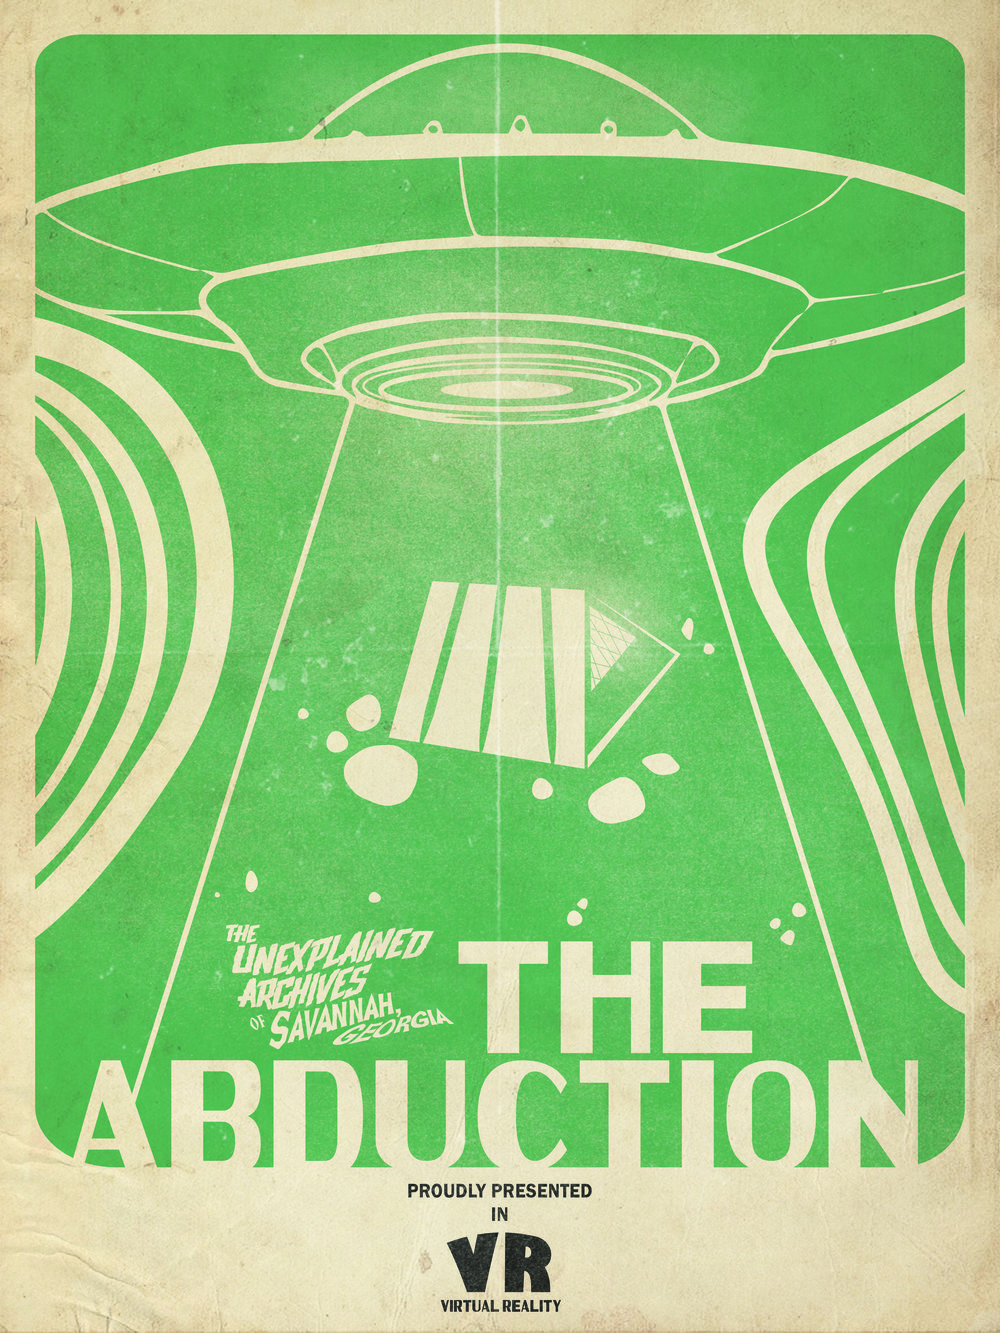 Abduction Lower Res.jpg